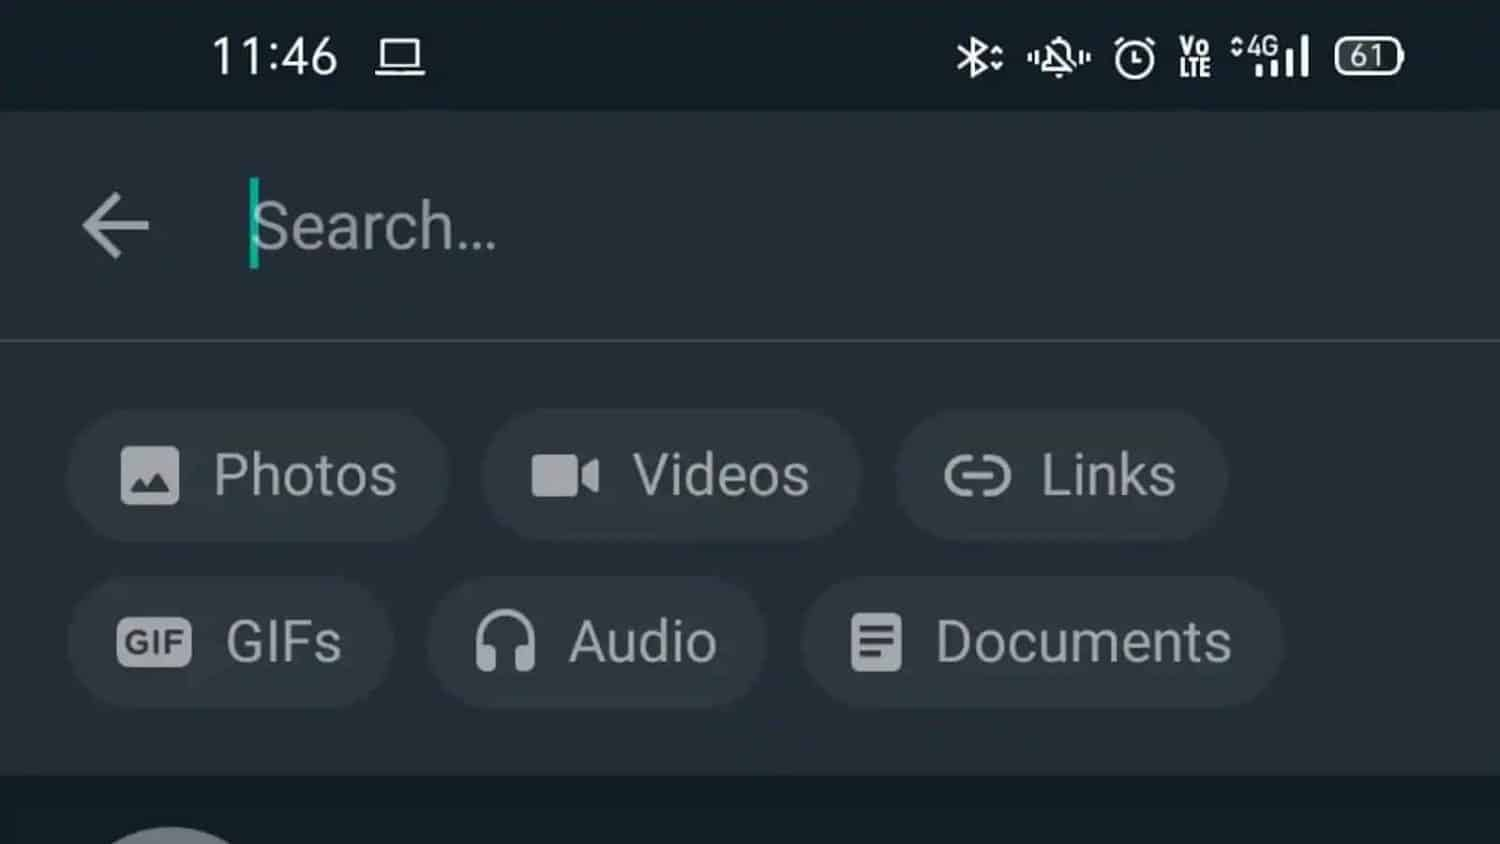 WhatsApp rolls out 'Advanced Search' feature for Android beta users, here's how it works